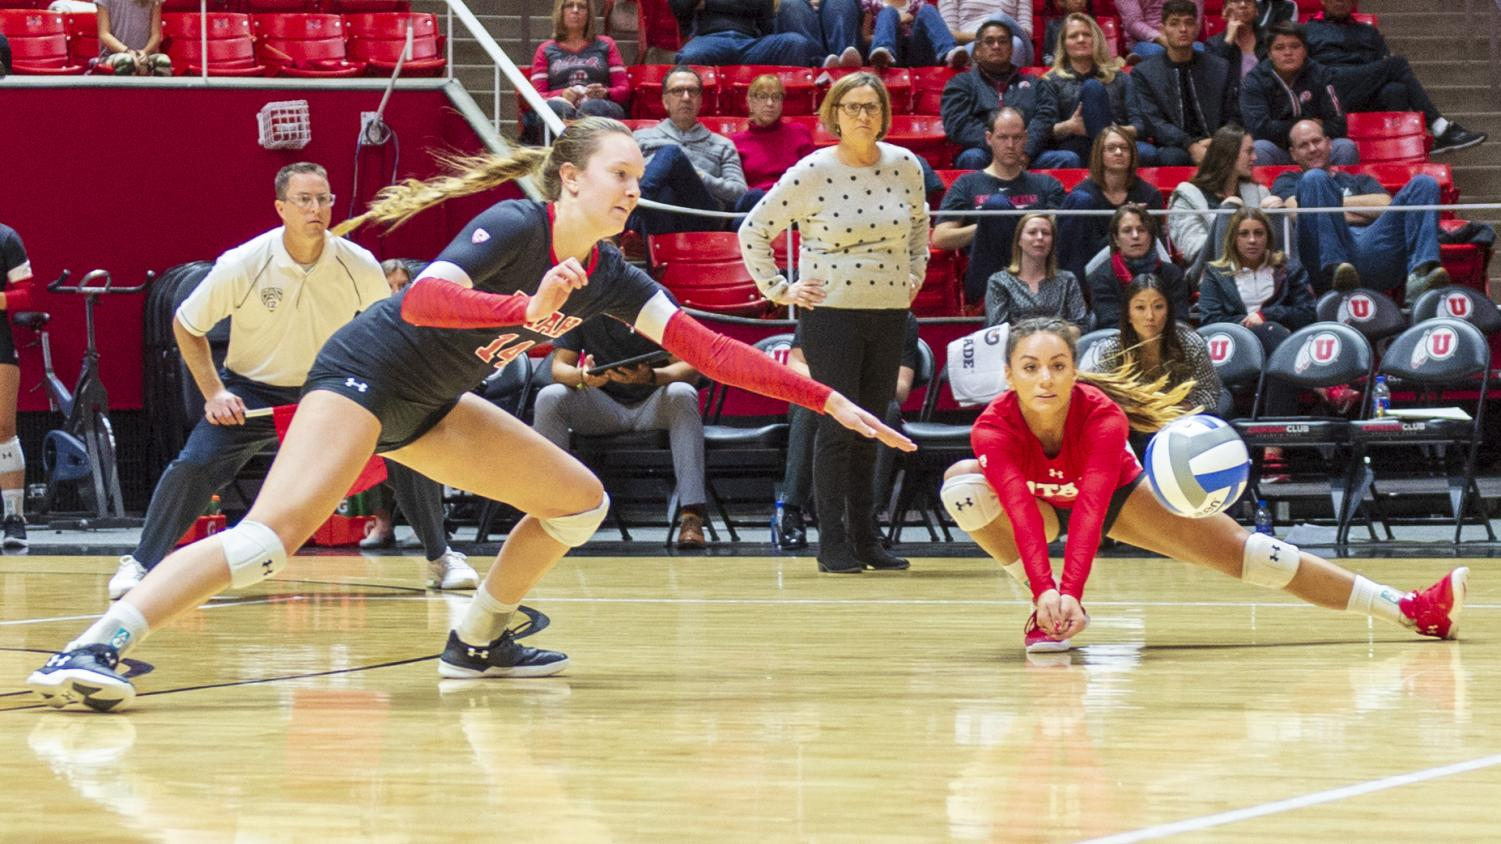 University of Utah junior libero/defensive specialist Brianna Doehrmann (17) attempts to dive for a dig in an NCAA Volleyball match vs. The Colorado Buffalos at the Jon M. Huntsman Center in Salt Lake City, Utah on Friday, Nov. 23, 2018. (Photo by Kiffer Creveling   The Daily Utah Chronicle)